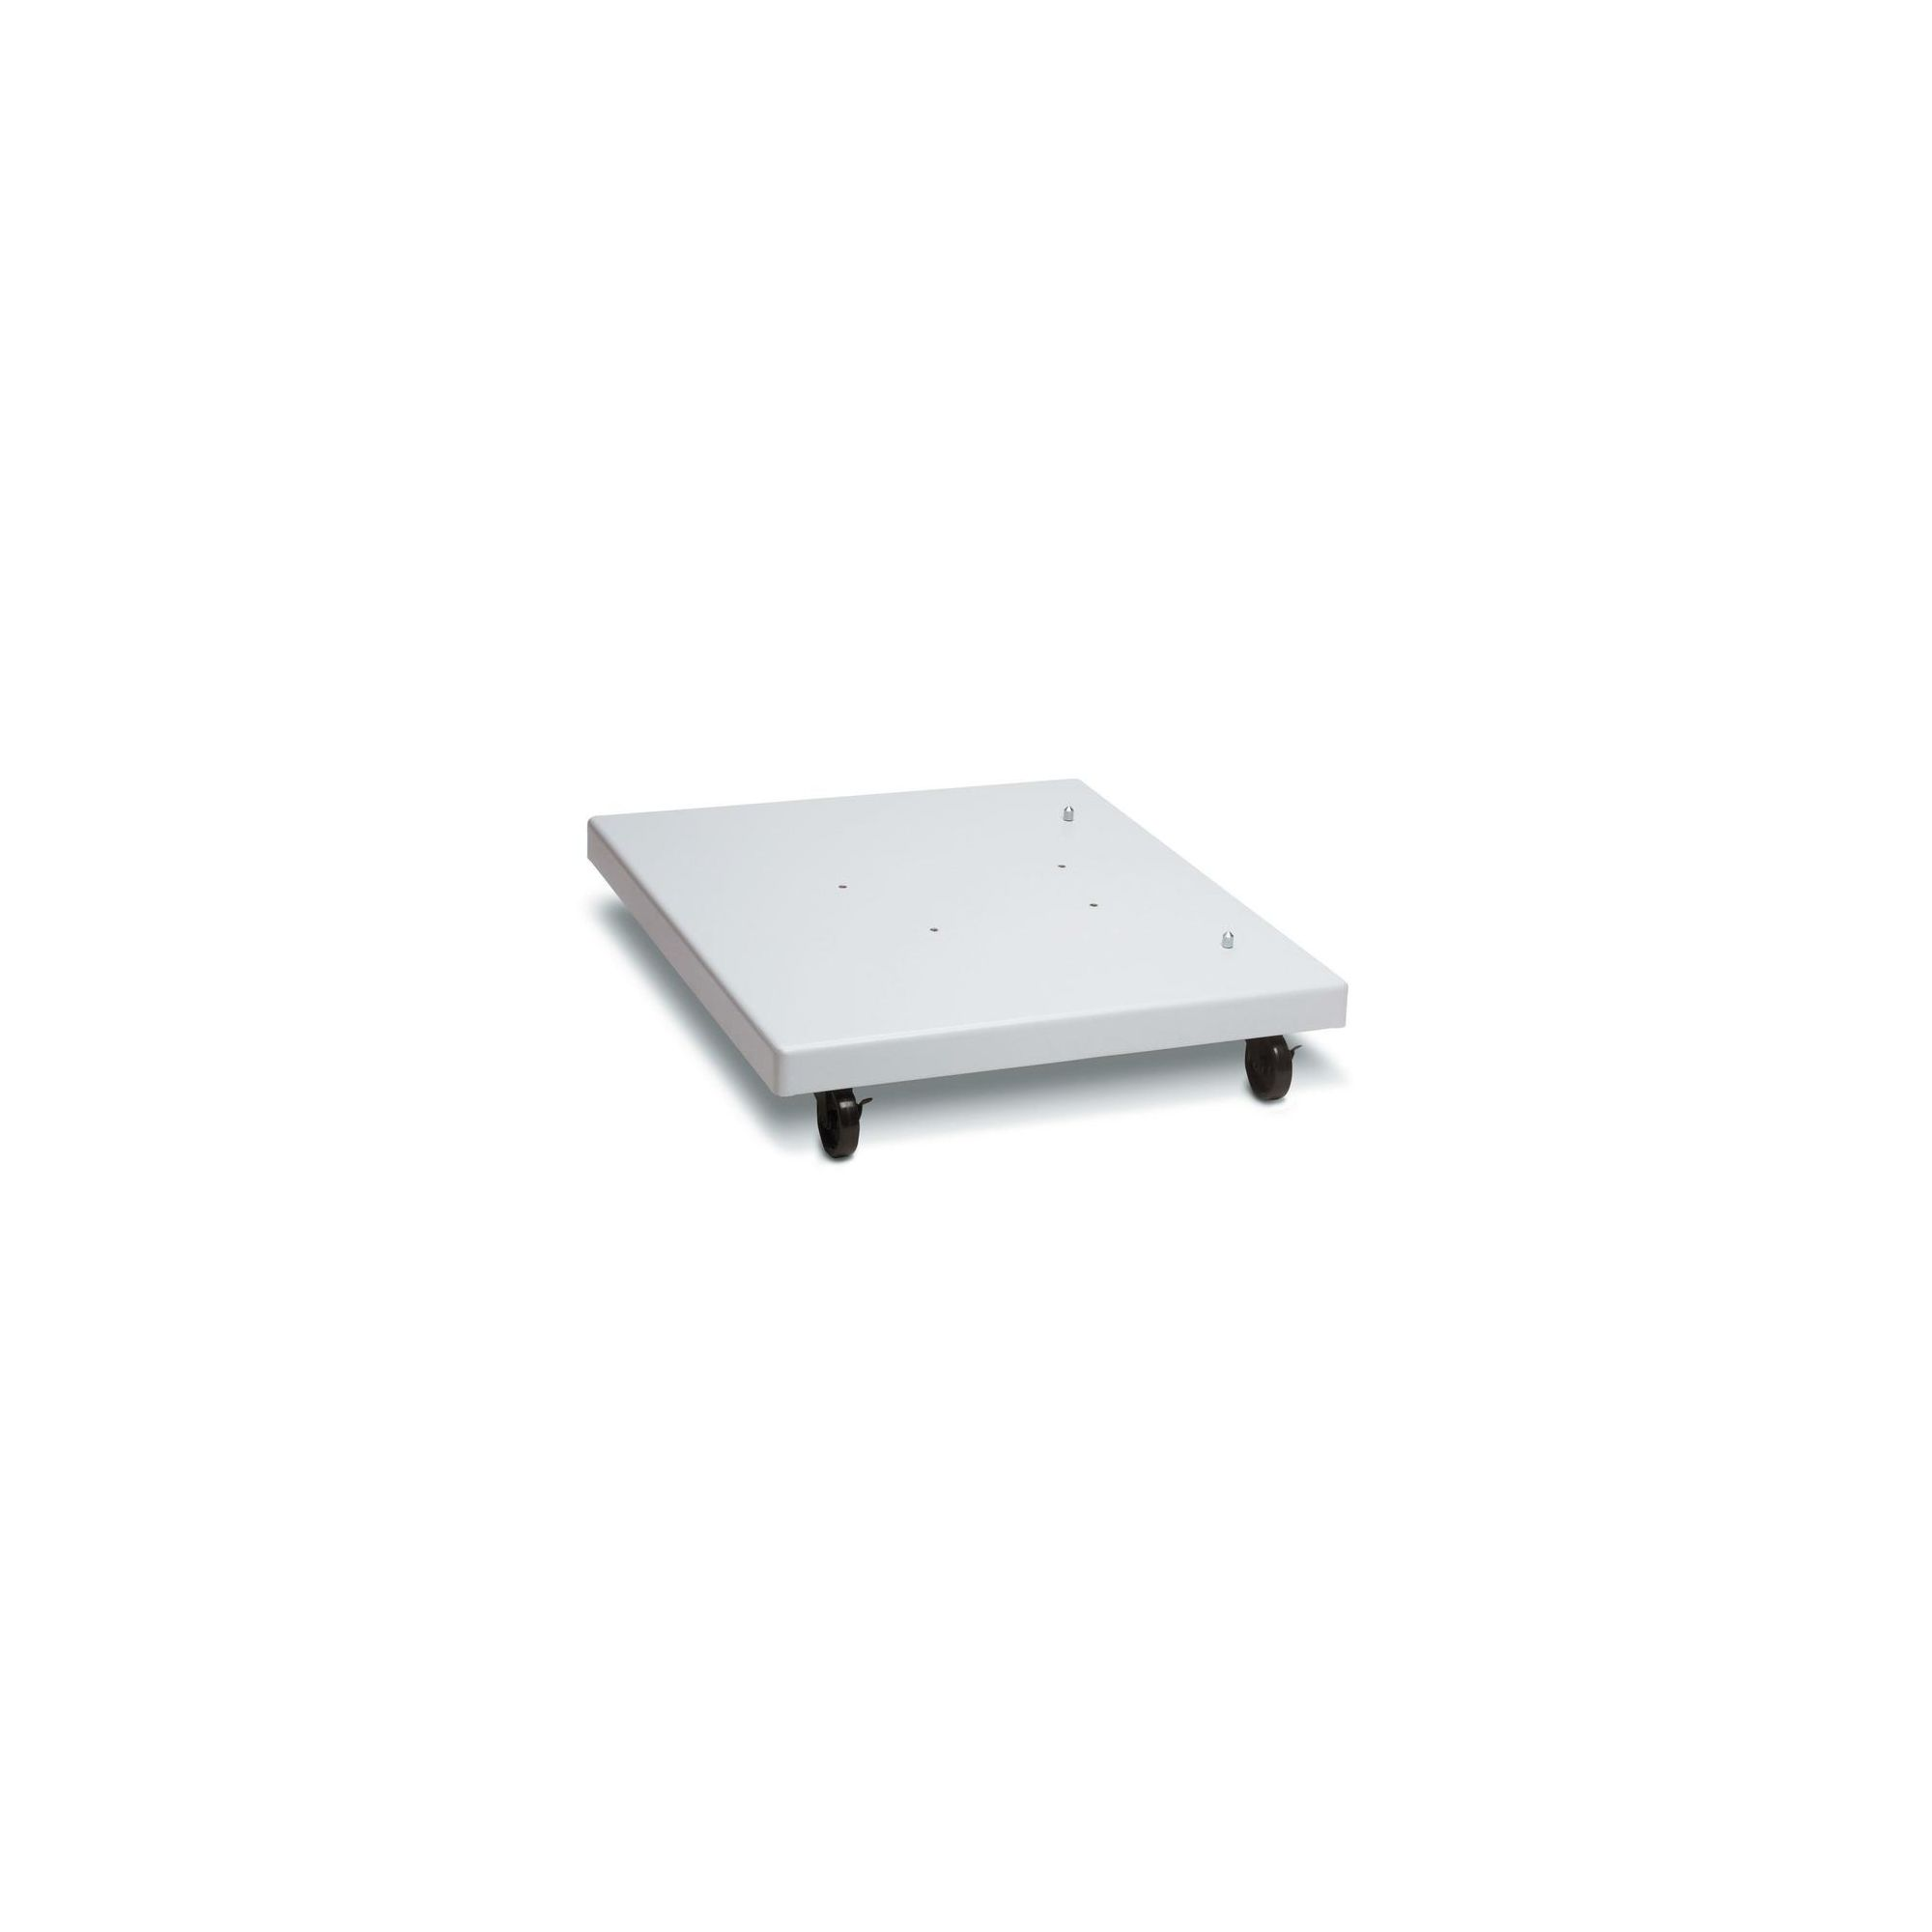 HP C9669B Printer Stand (with wheels) for Colour LaserJet 5500 at Tesco Direct